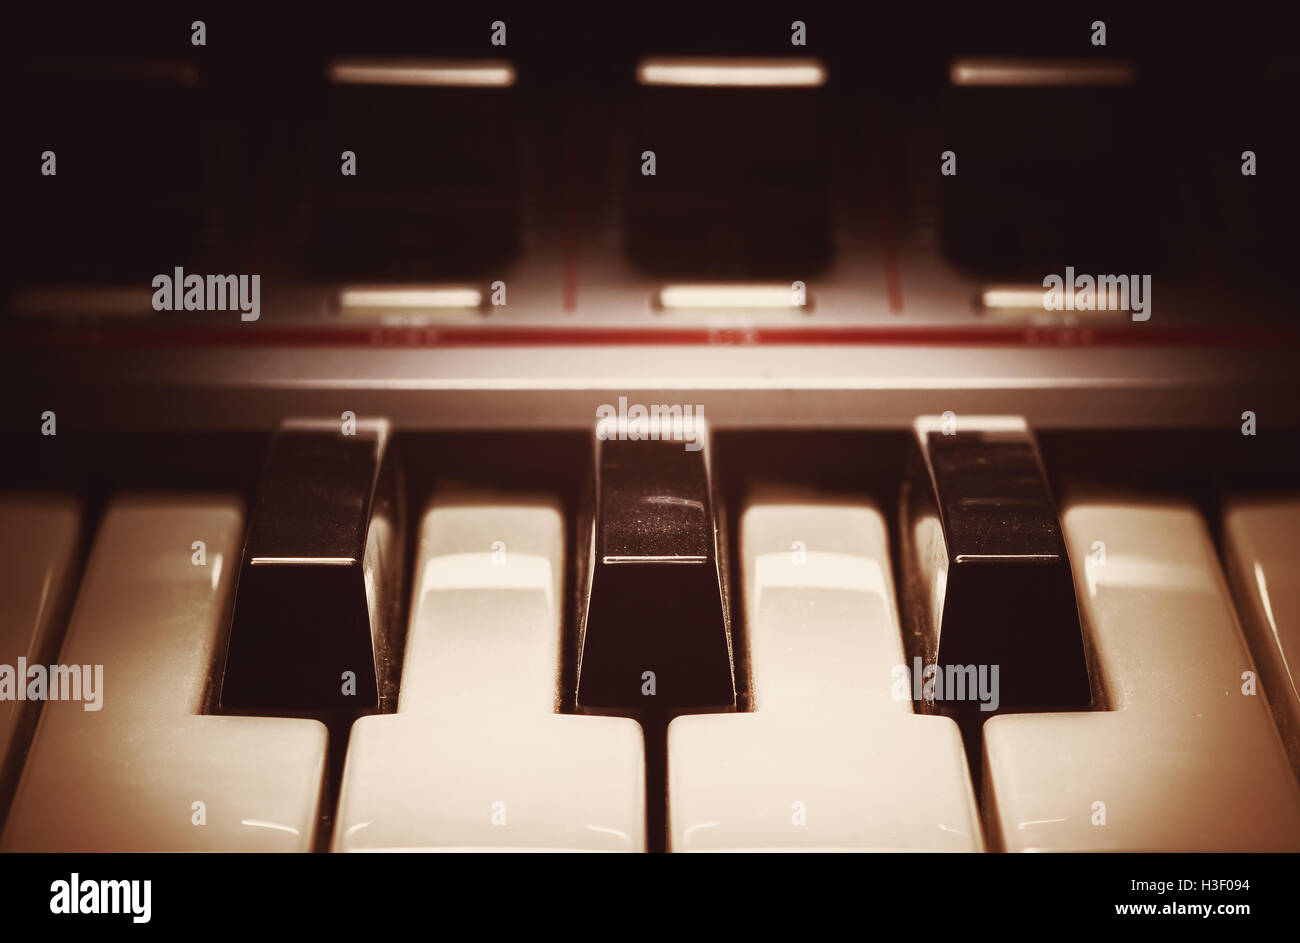 Details of a modern synthesizer keys, closeup view. - Stock Image